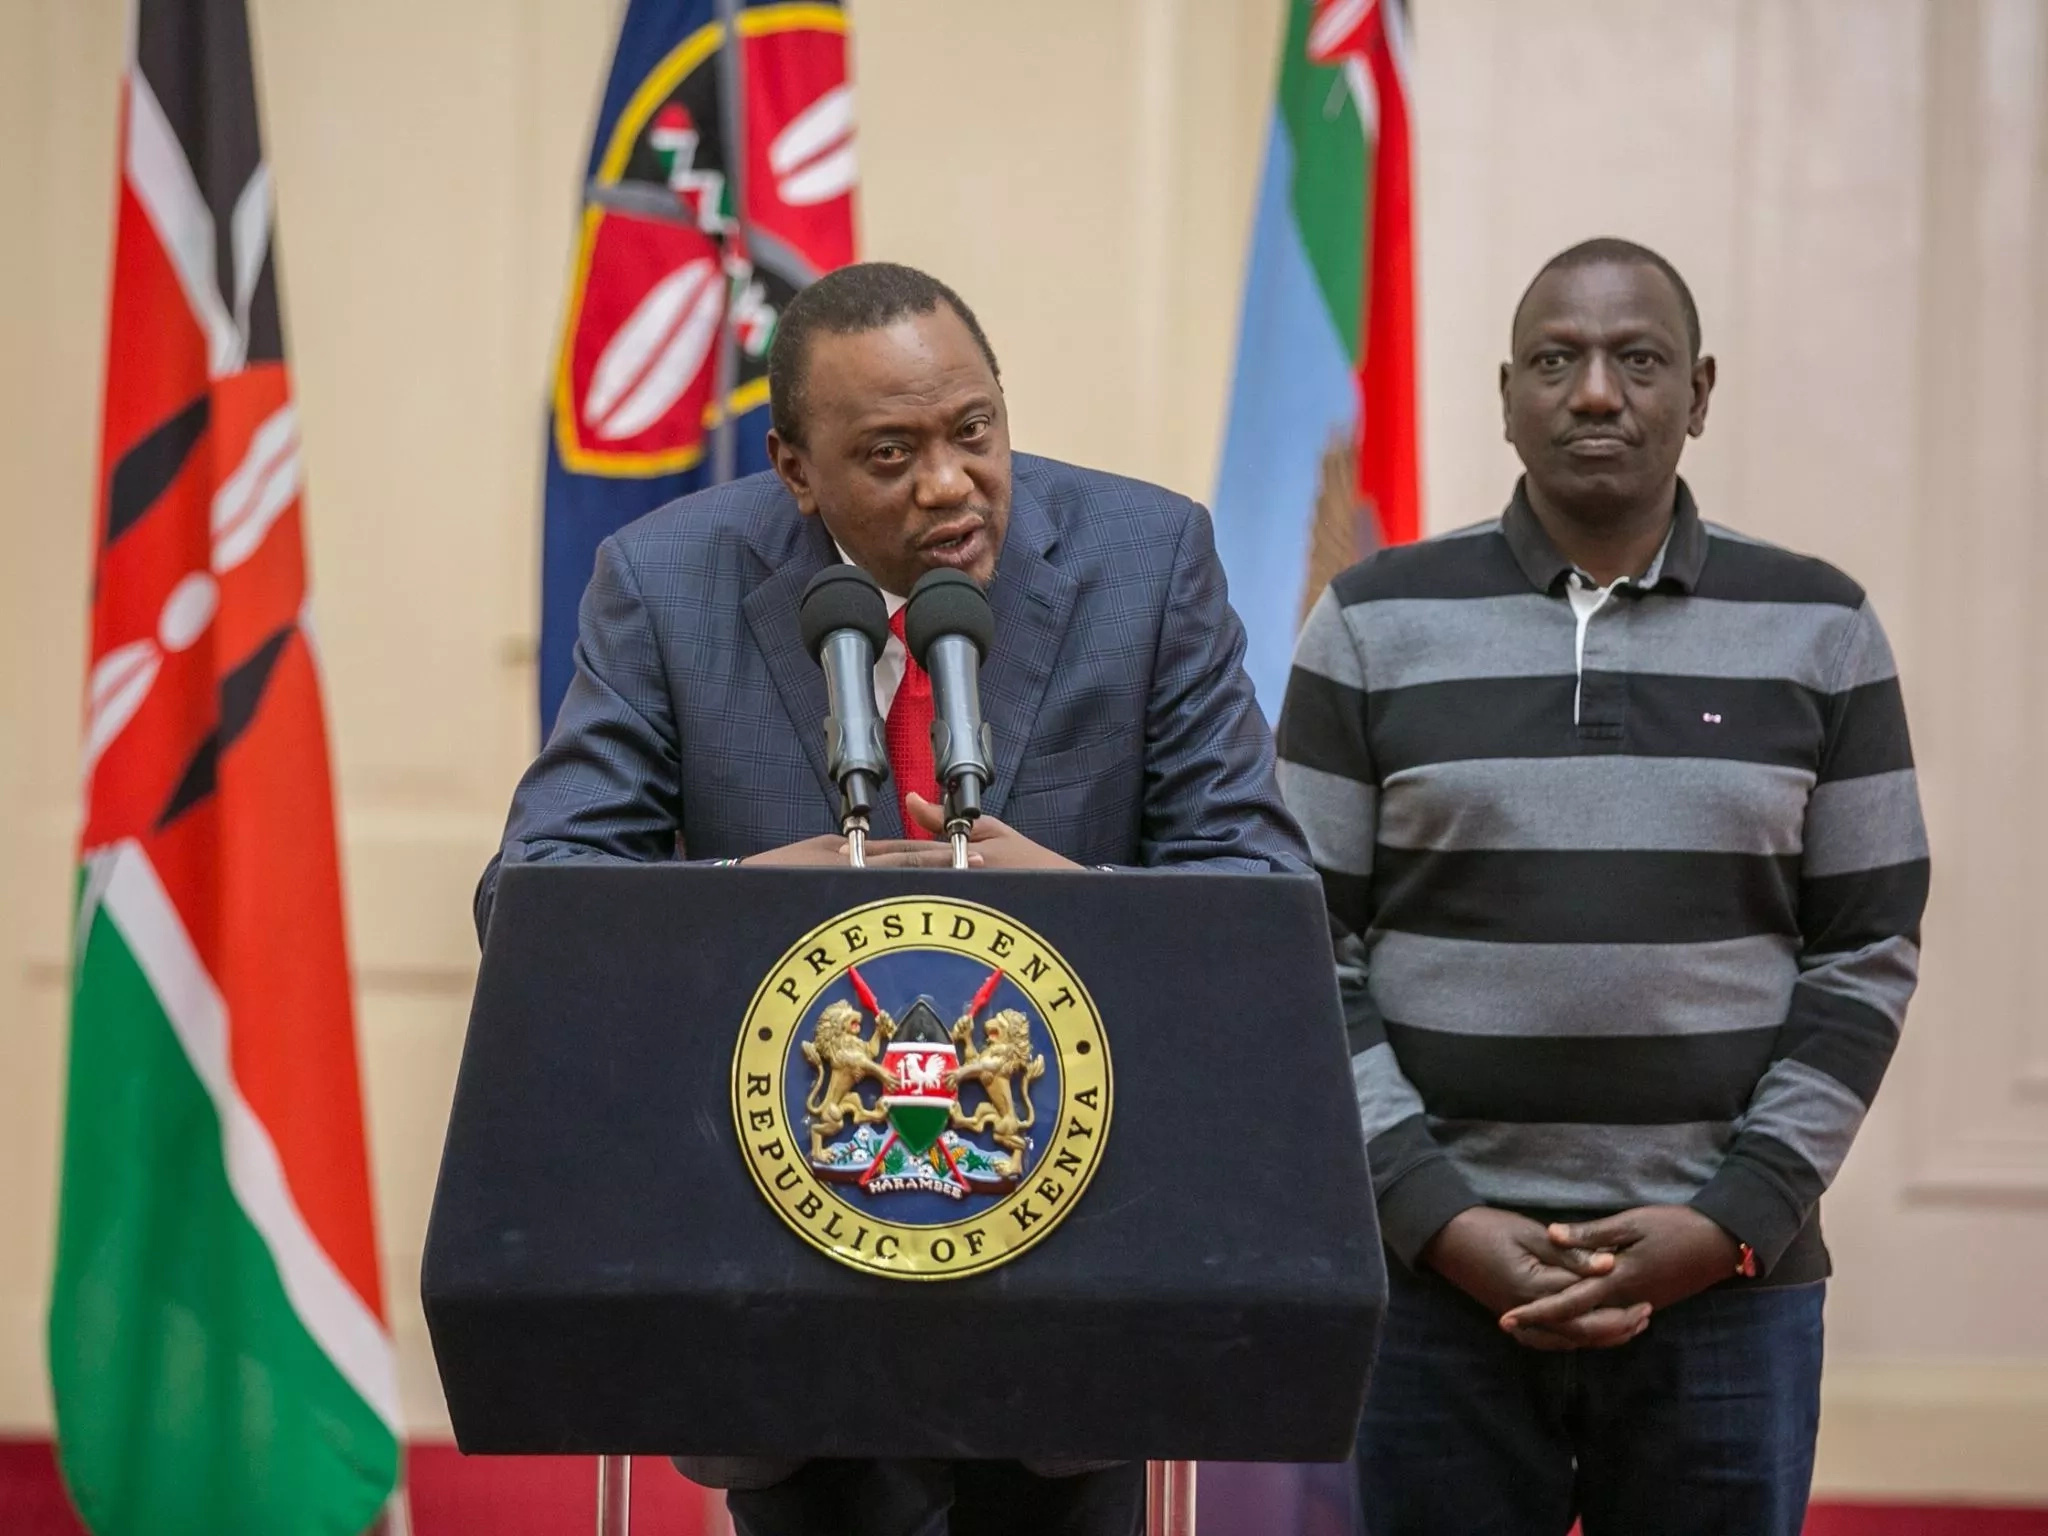 Kenya on the recovery path as opposition leaders embrace Uhuru Kenyatta's presidency